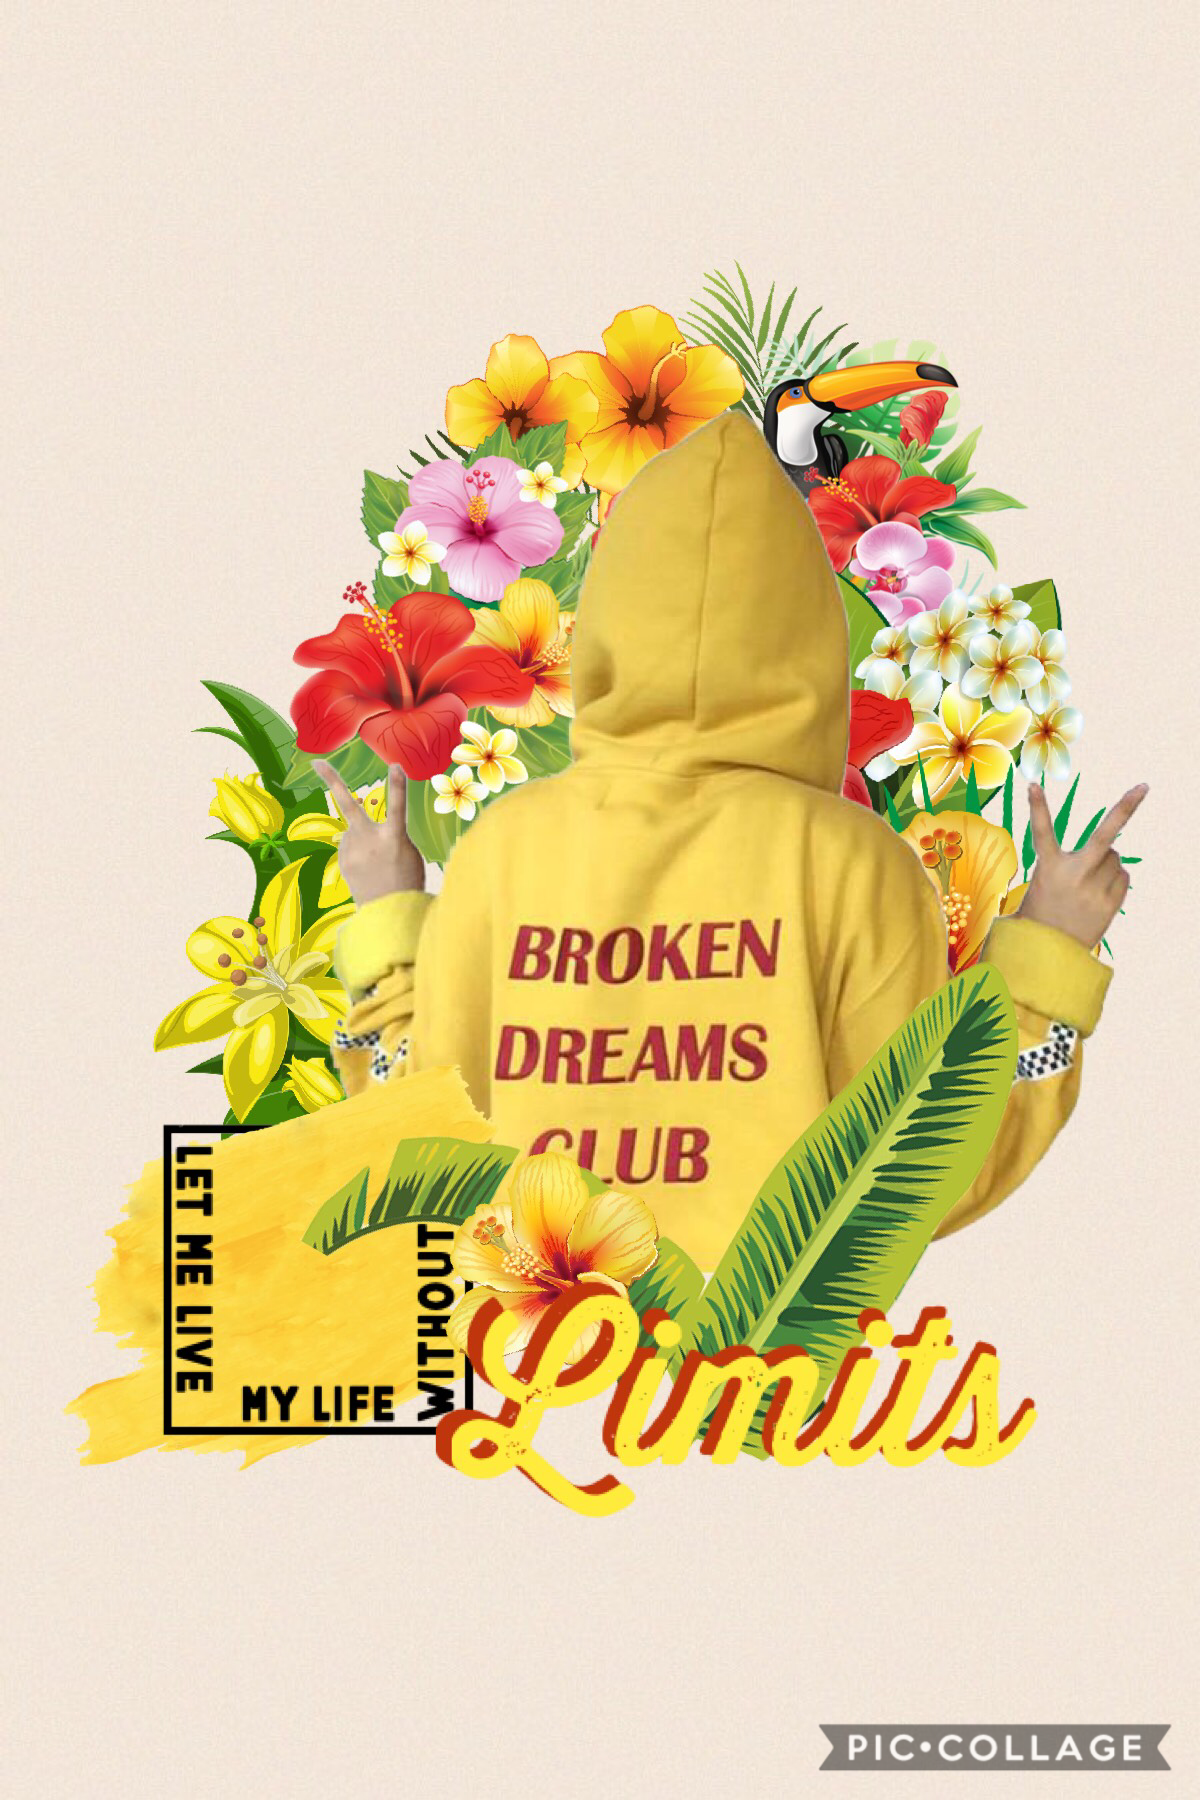 t a p The message of this collage is not to give up on your dreams but to show that dreams can be broken and I guess we just have to grow from the struggle and besides misery like company. Also it's yellow 💛💛💛